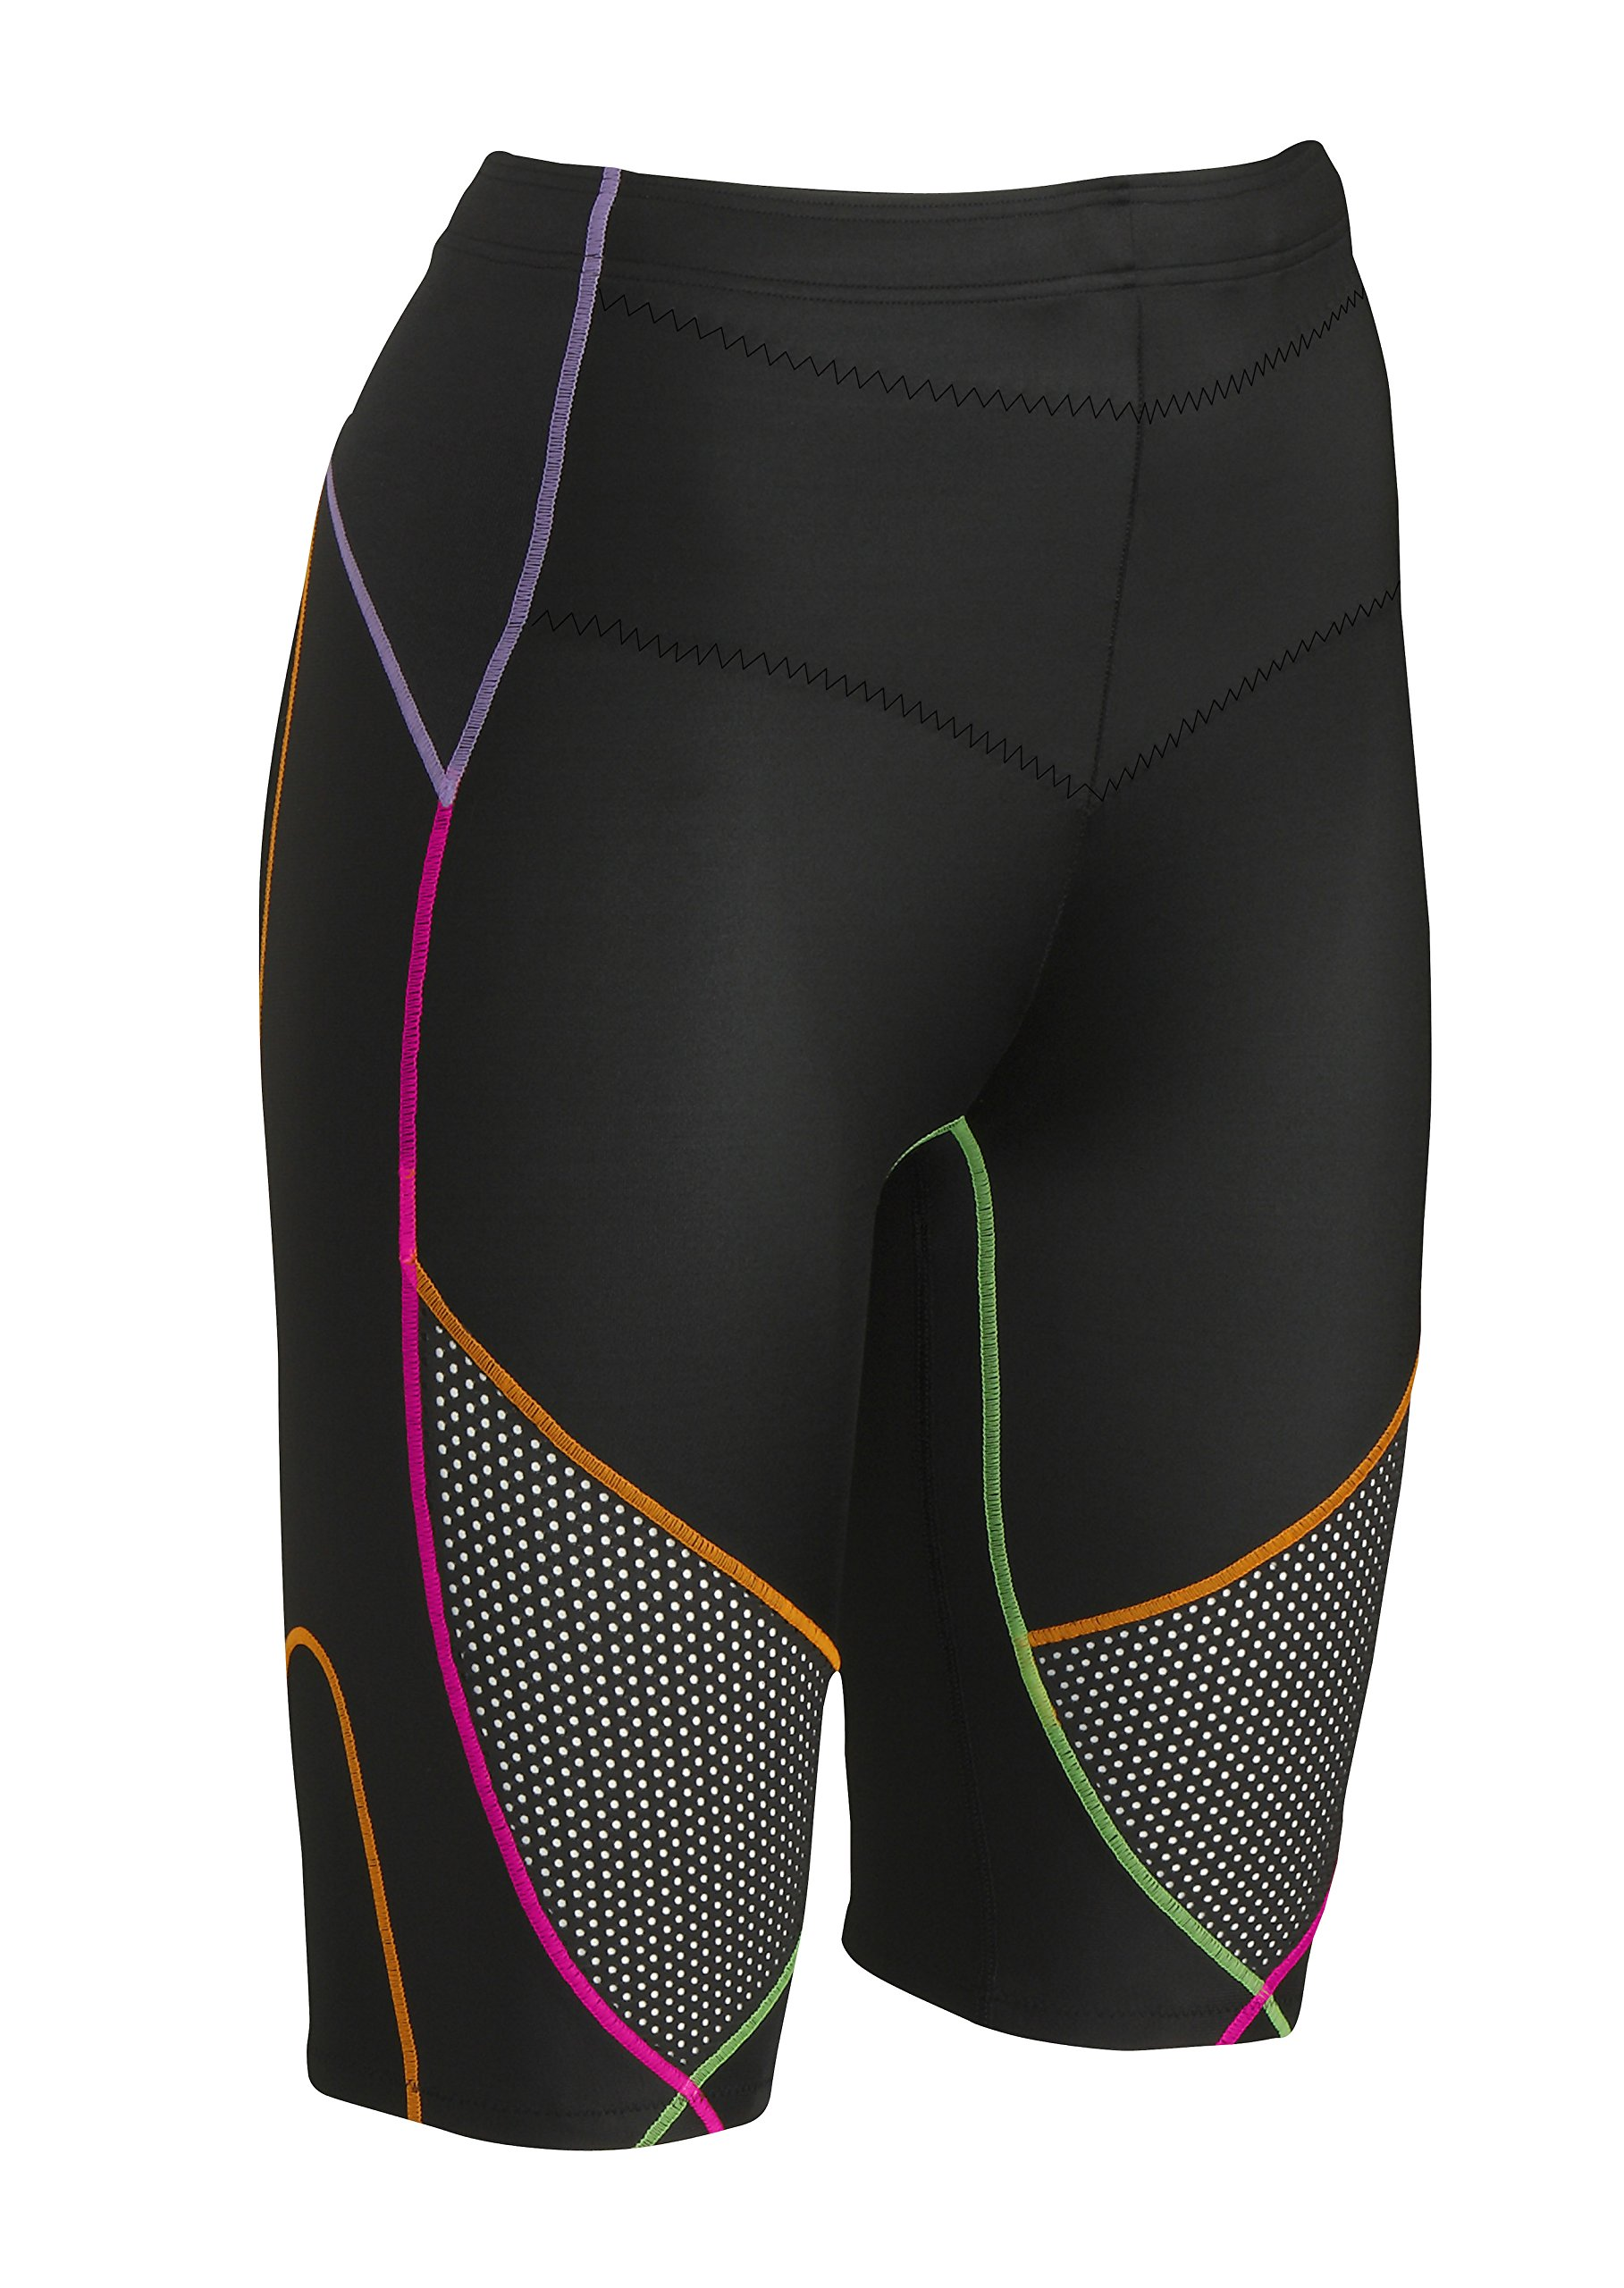 CW-X Men's Stabilyx Ventilator Short, Black/Rainbow Small by CW-X (Image #2)